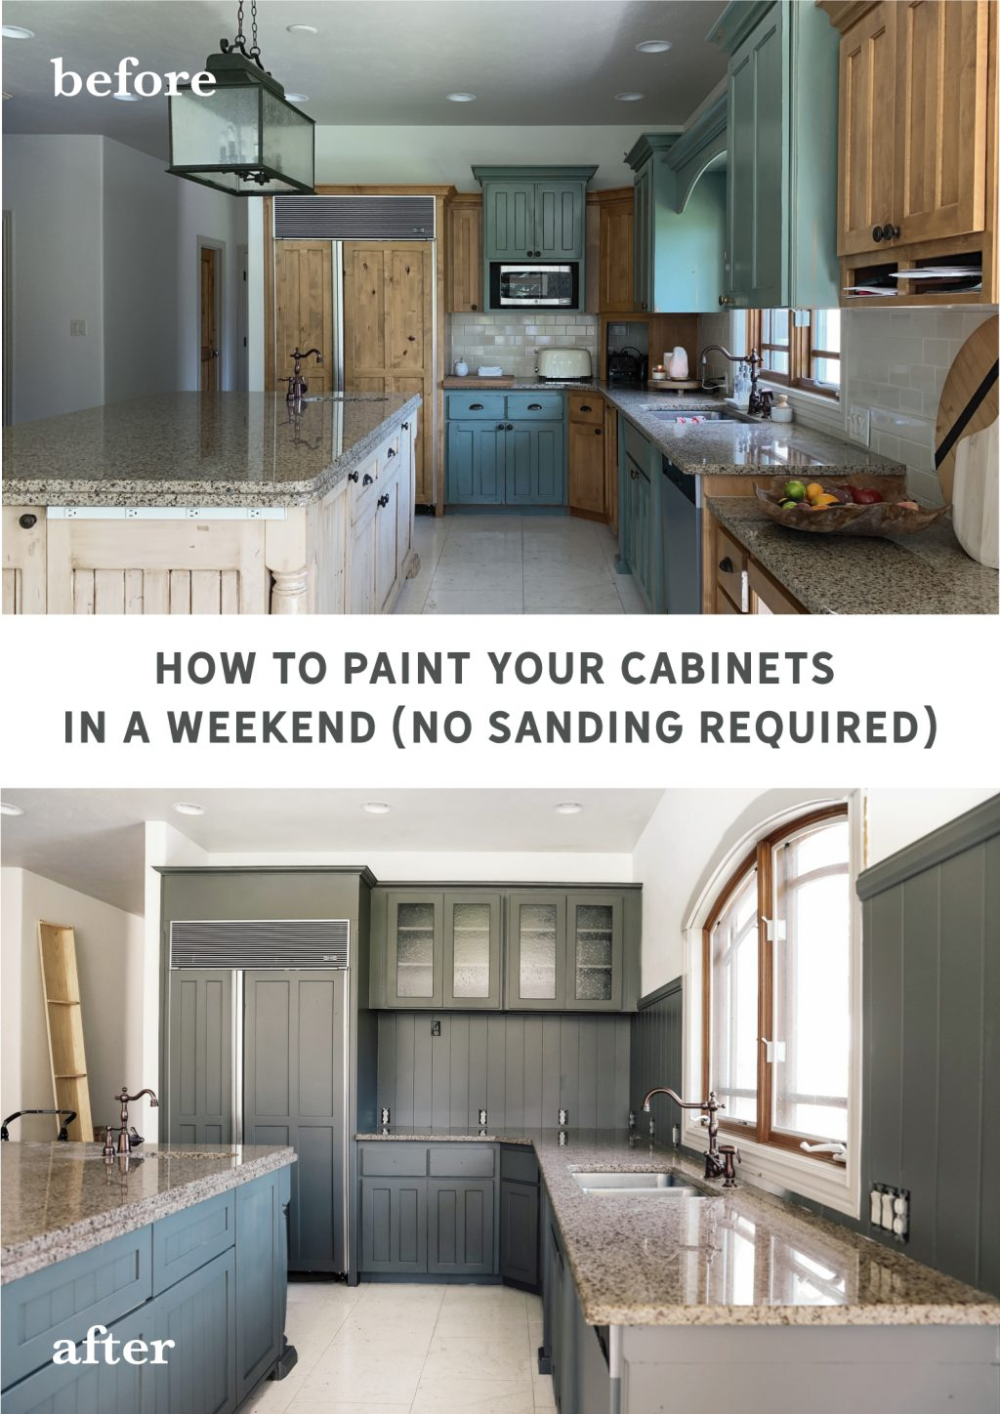 How To Paint Your Cabinets In A Weekend Without Sanding Them In 2020 Kitchen Decor Inspiration Boho Kitchen Kitchen Paint